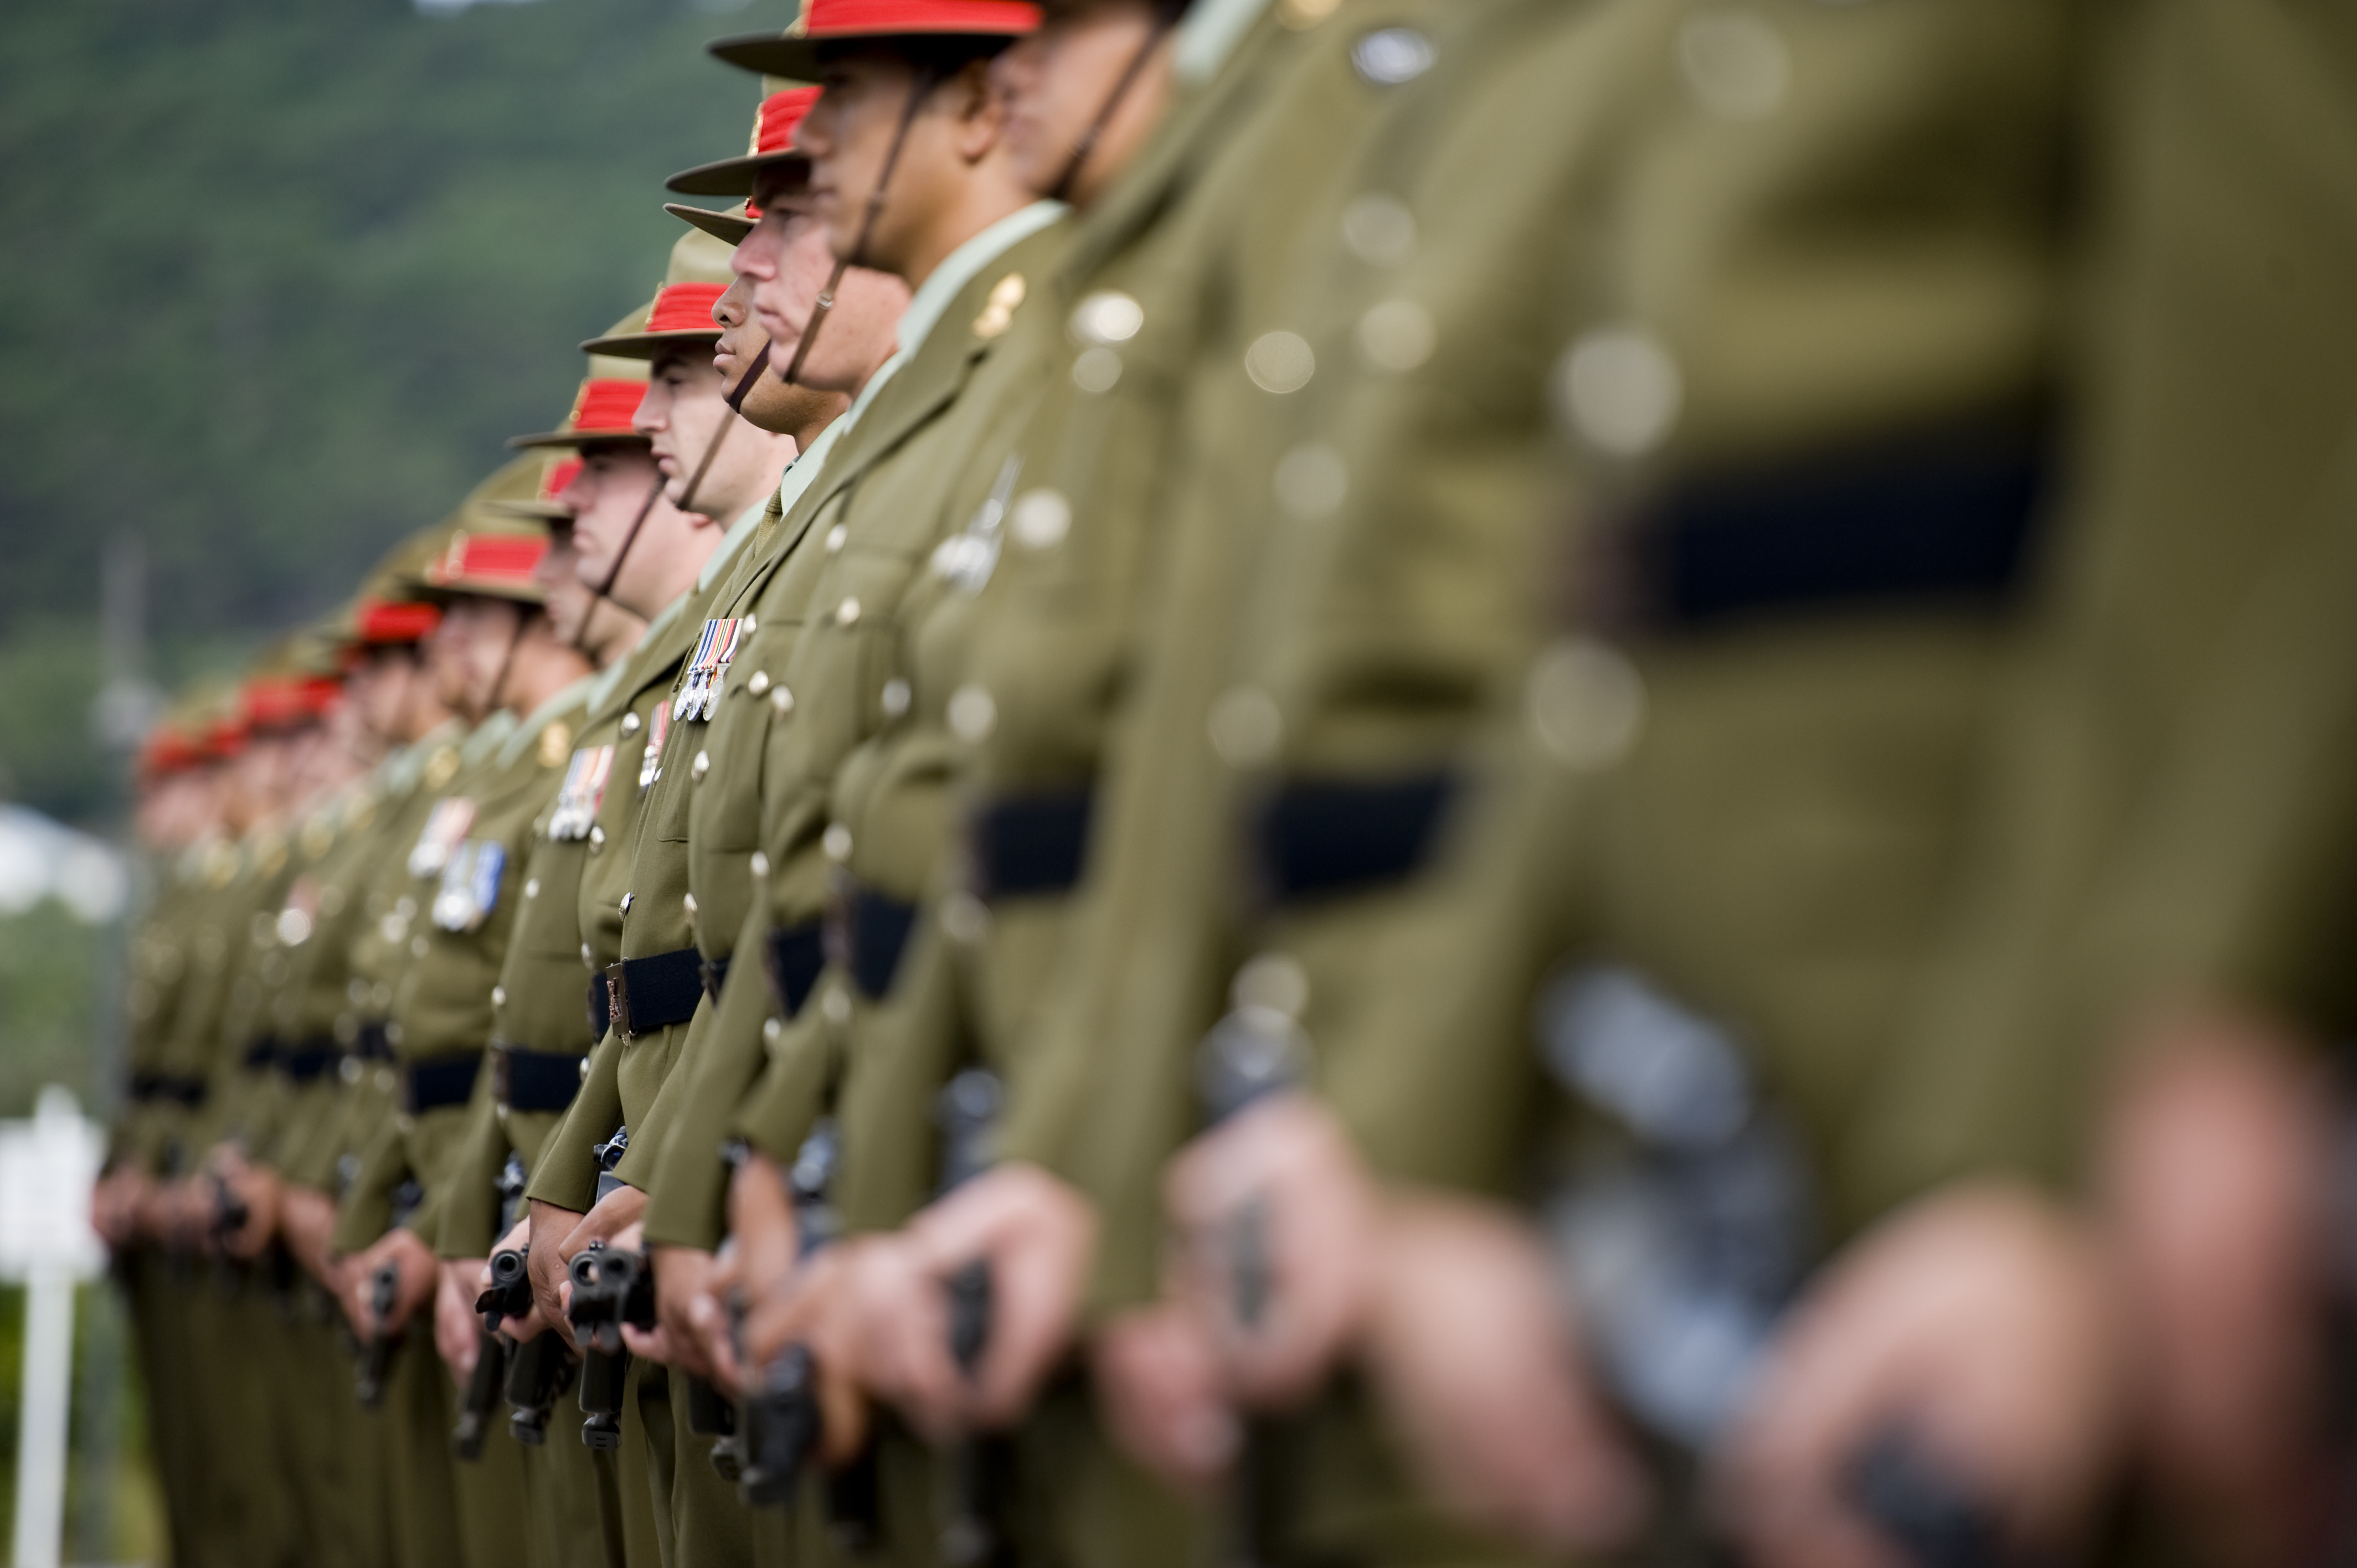 Image: Line of soldiers in uniform